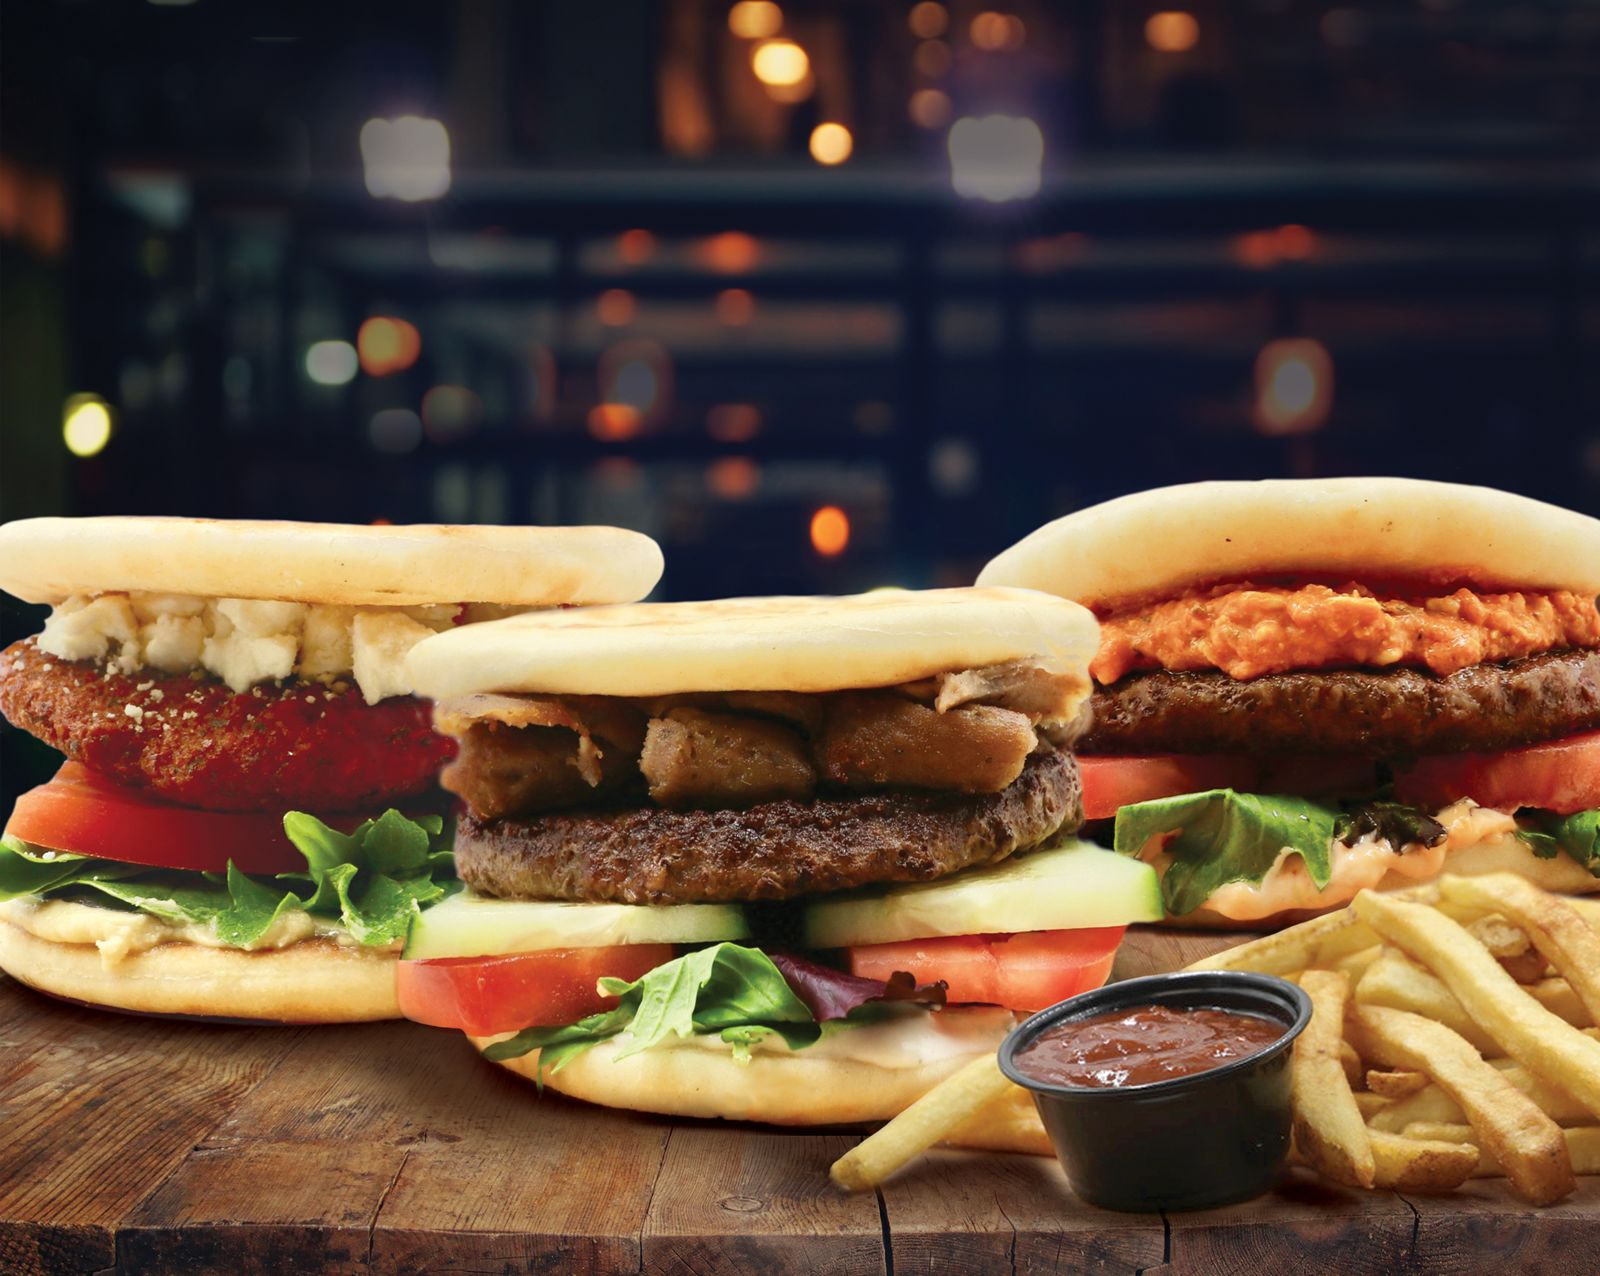 Daphne's has introduced a line of three Pita Burgers, which are available at all 21 Daphne's locations through December 31.